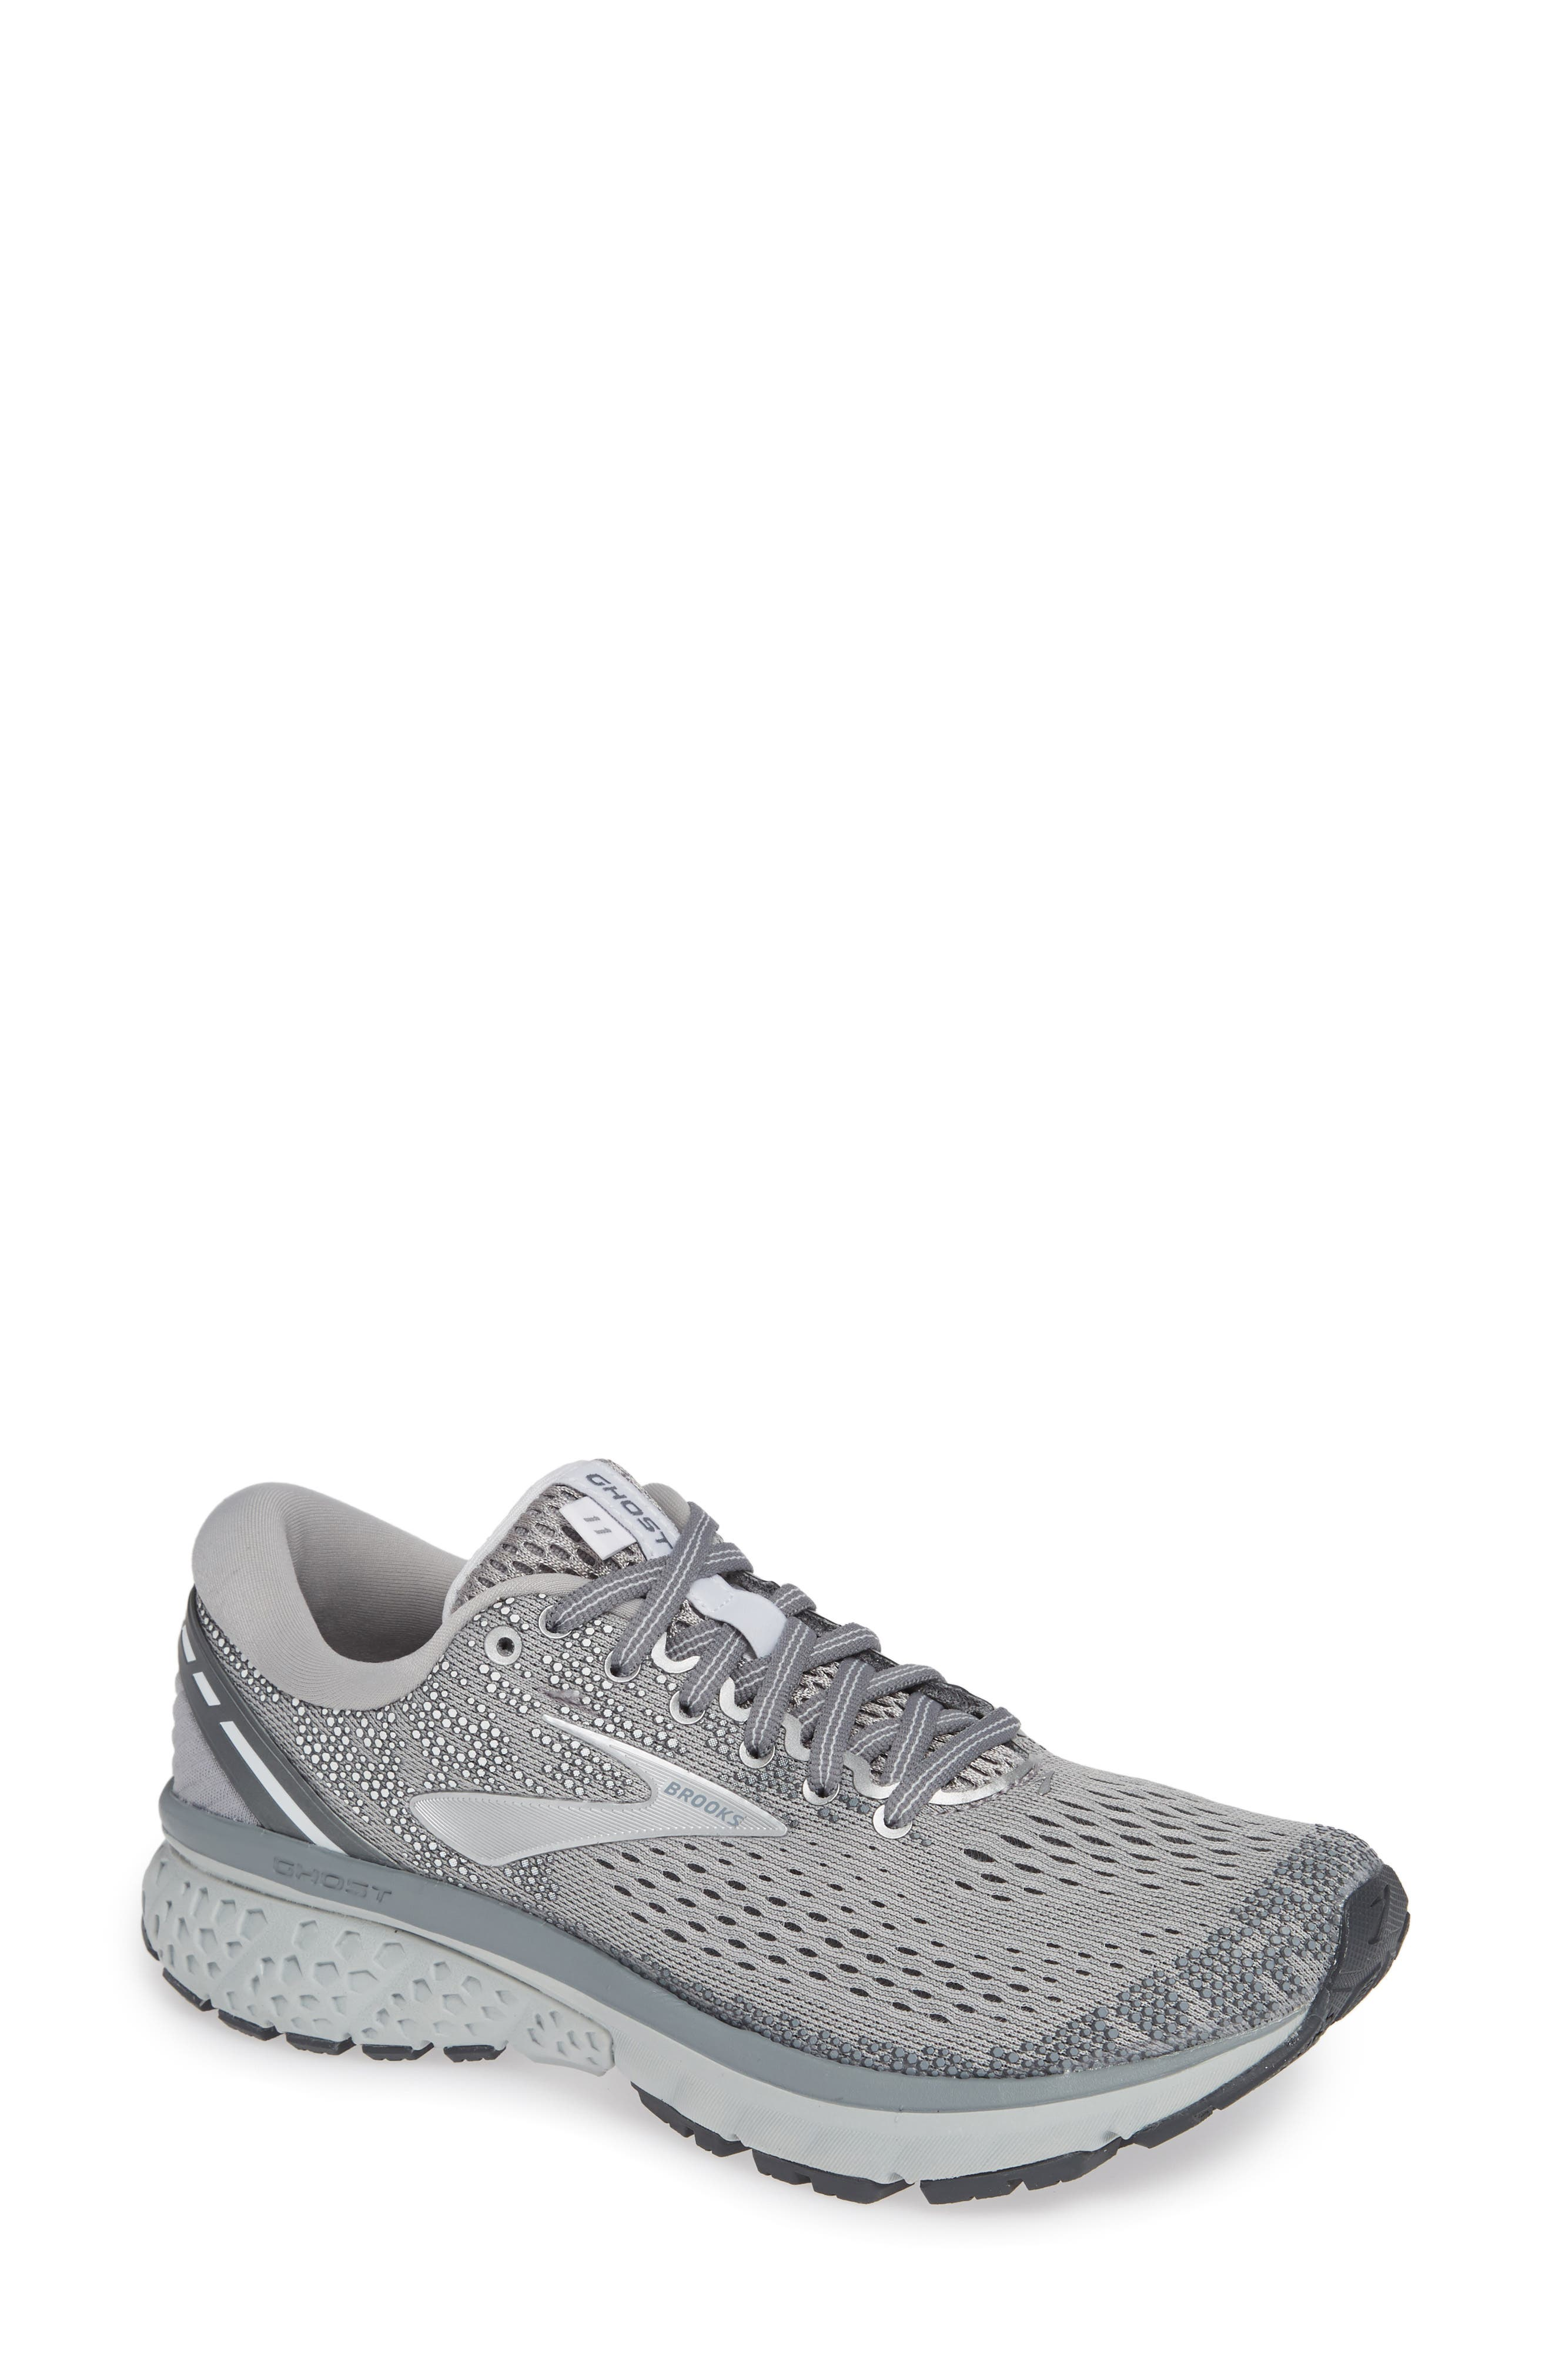 Ghost 11 Running Shoe, Main, color, GREY/ SILVER/ WHITE